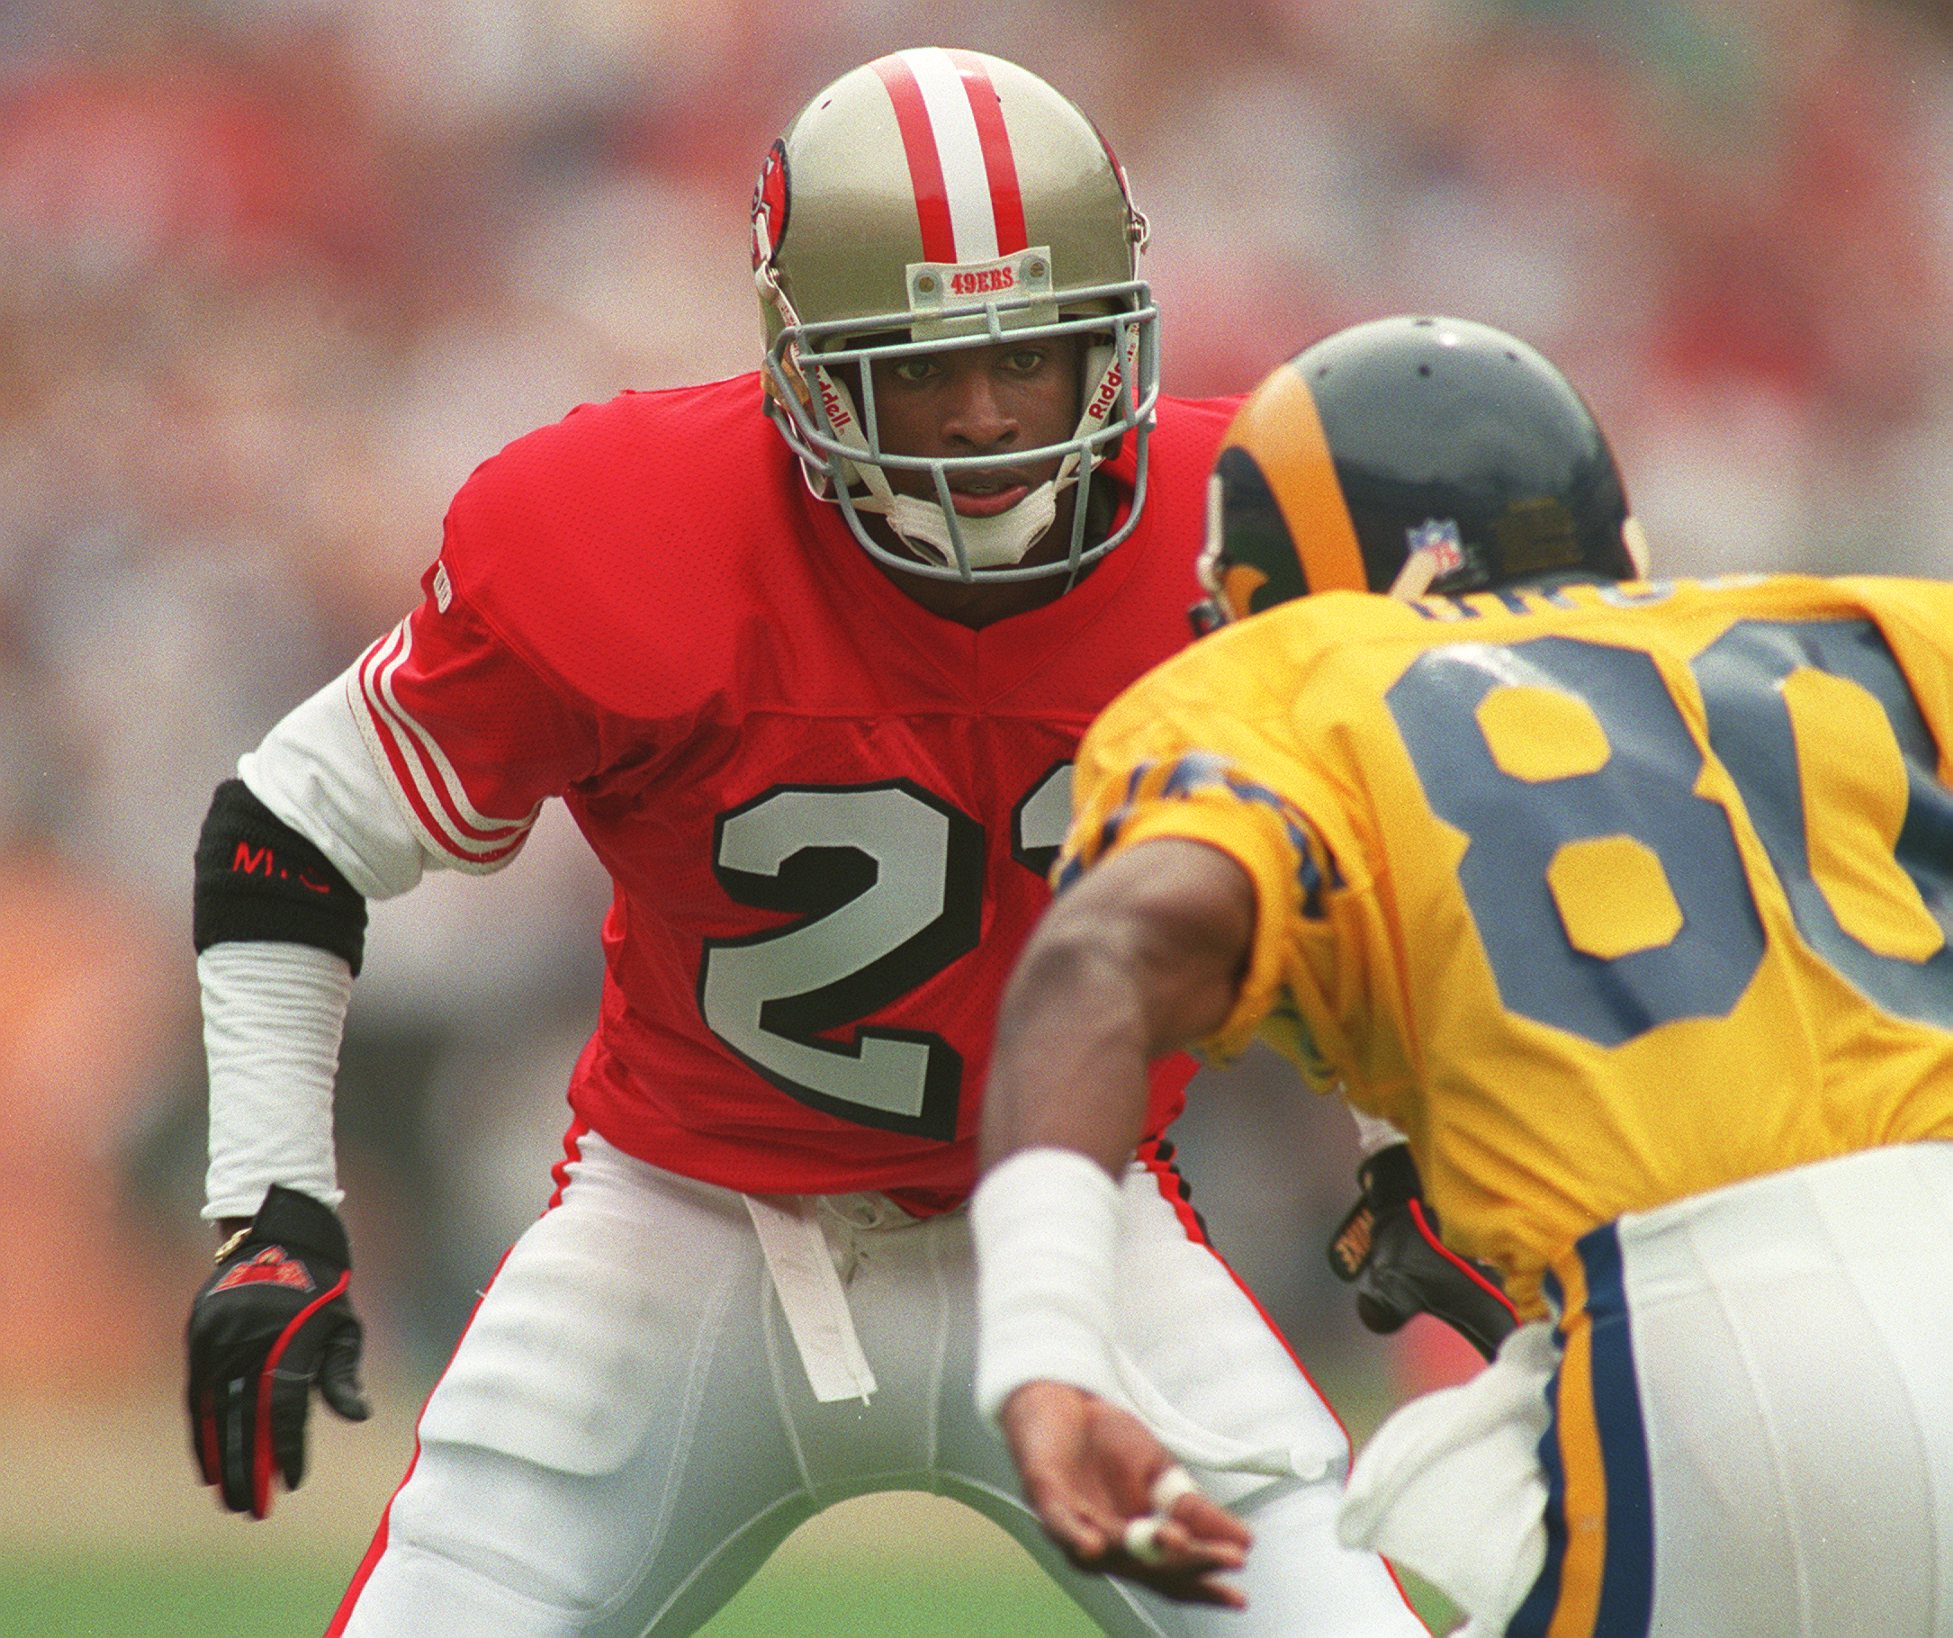 18 SEP 1994:  CORNERBACK DEION SANDERS OF THE SAN FRANCISCO 49ERS DEFENDS AGAINST A RAM''S WIDE RECEIVER DURING THE 49ERS 34-19 WIN AT AT ANAHEIM STADIUM IN CALIFORNIA. Mandatory Credit: Stephen Dunn/ALLSPORT